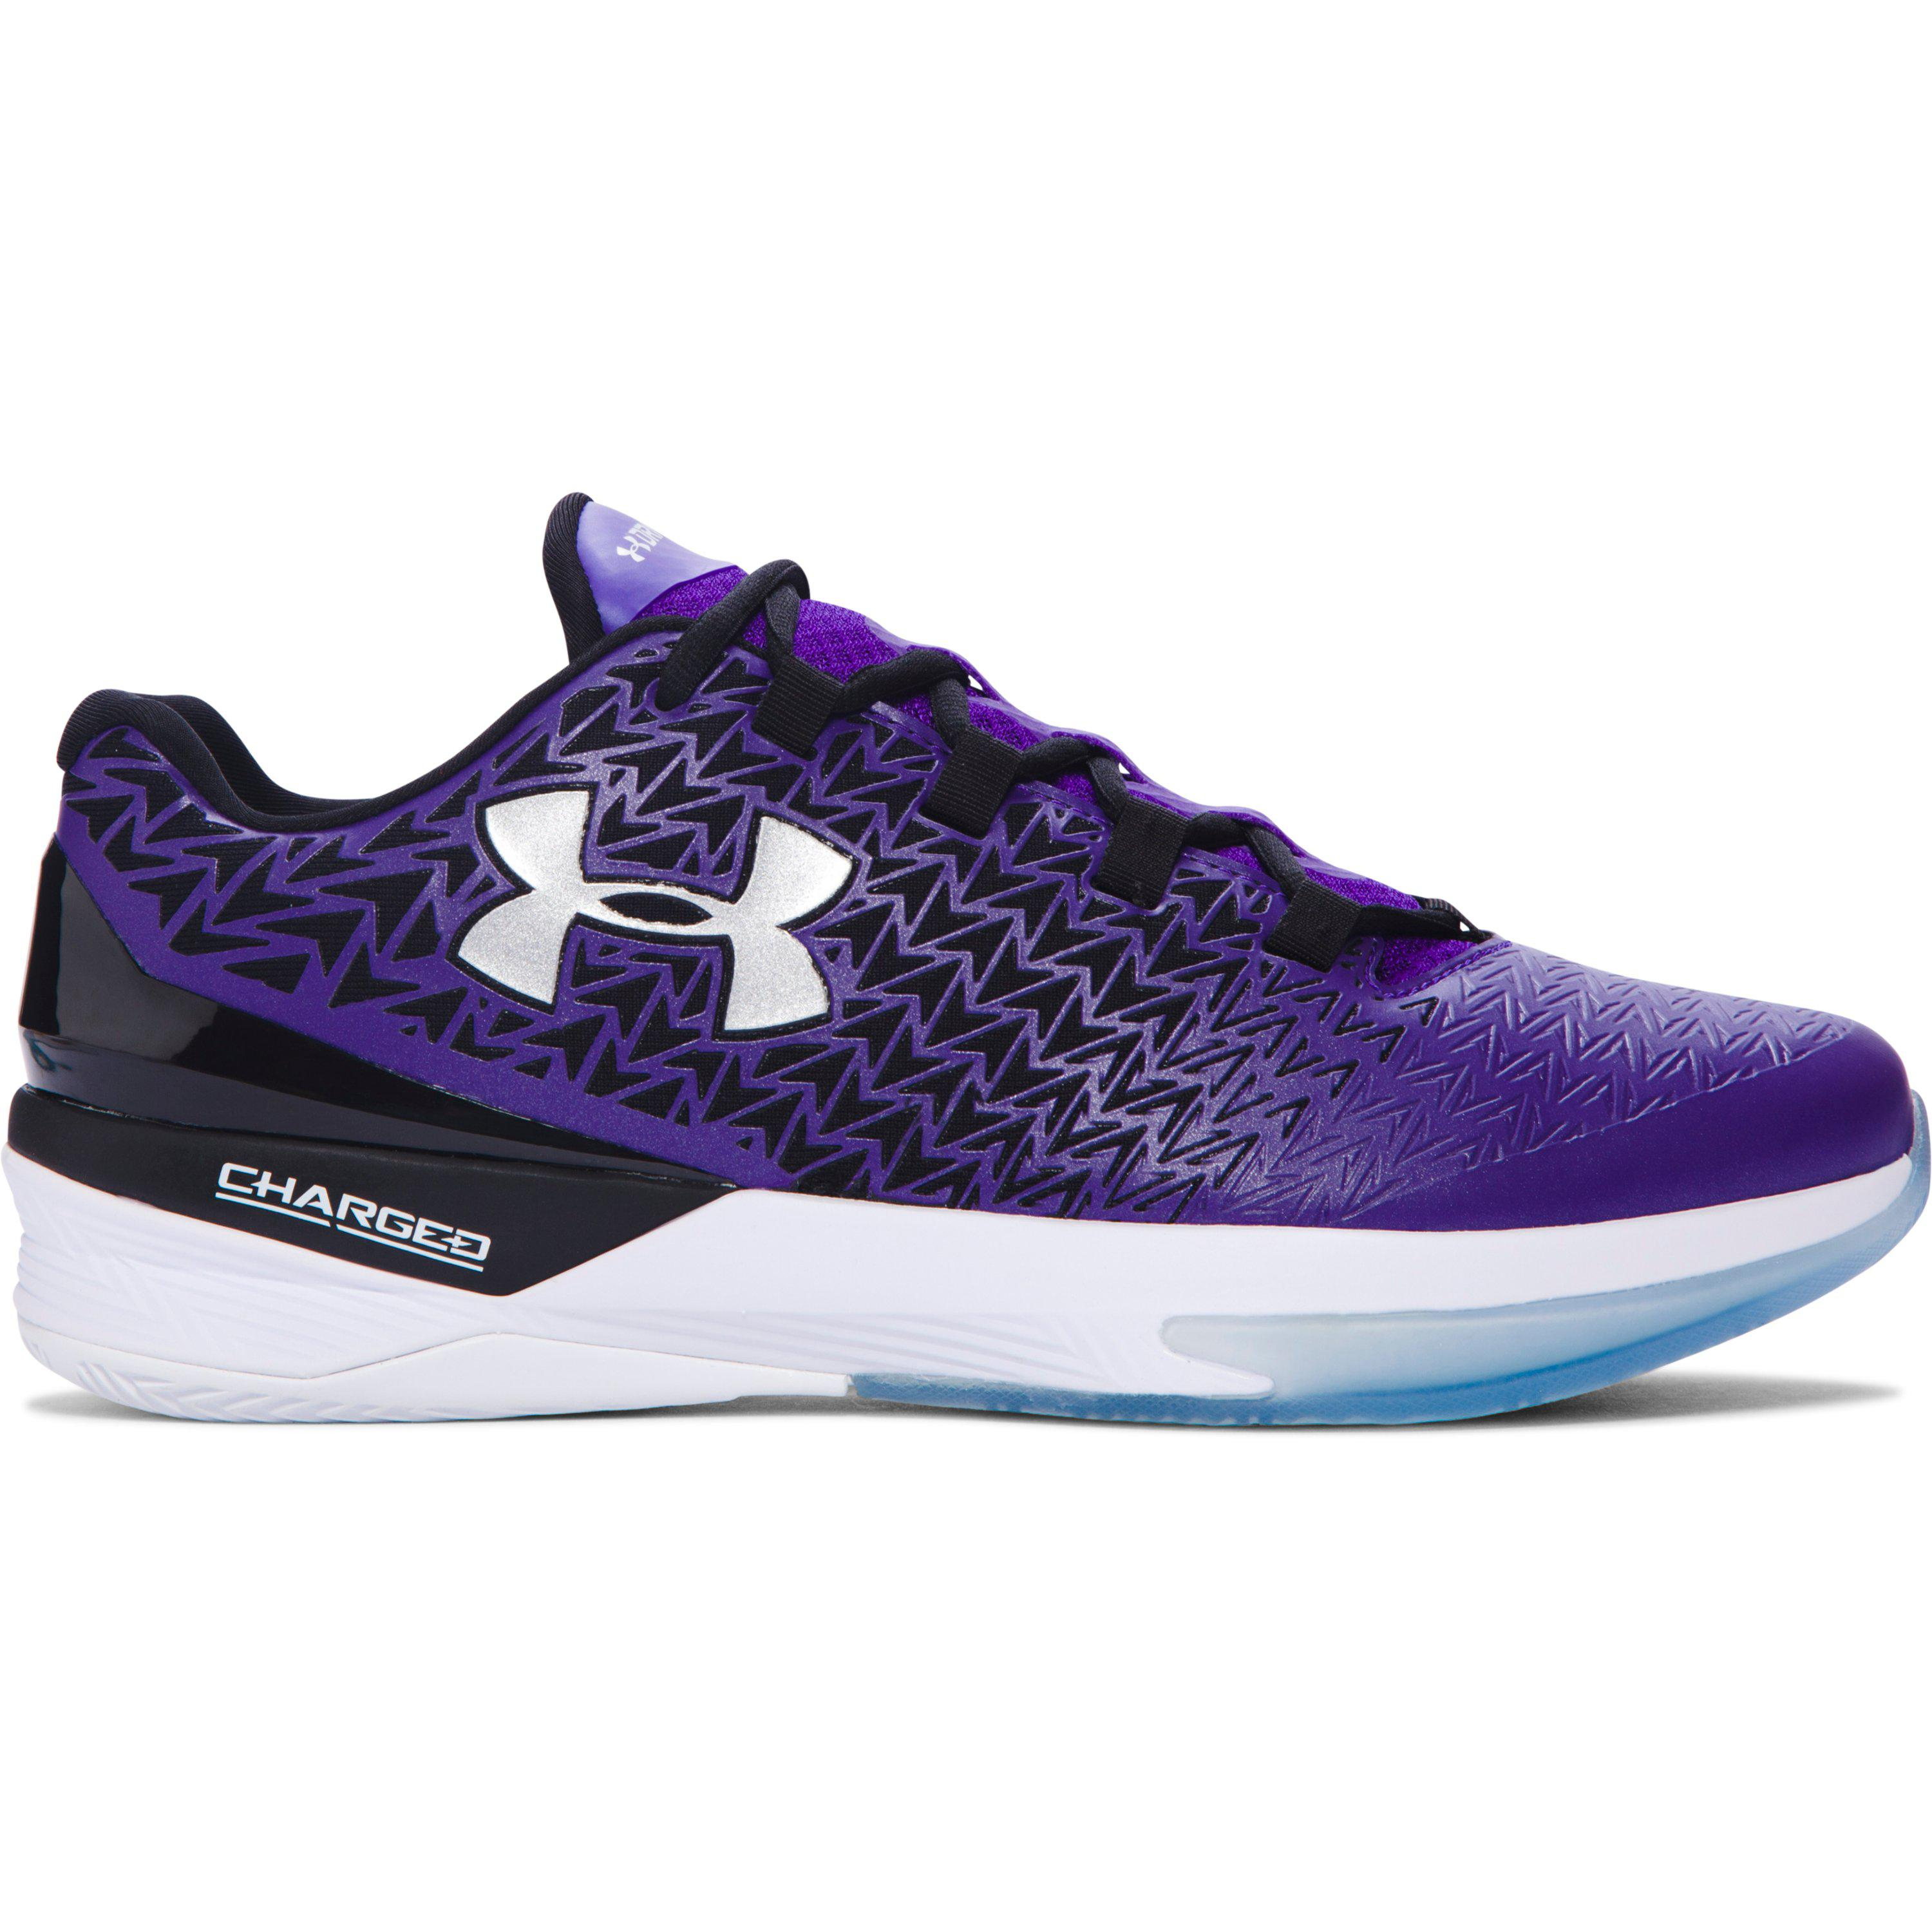 best cheap 326b6 616a4 ... hot lyst under armour mens ua clutchfit drive 3 low basketball shoes  d27ce 04bf3